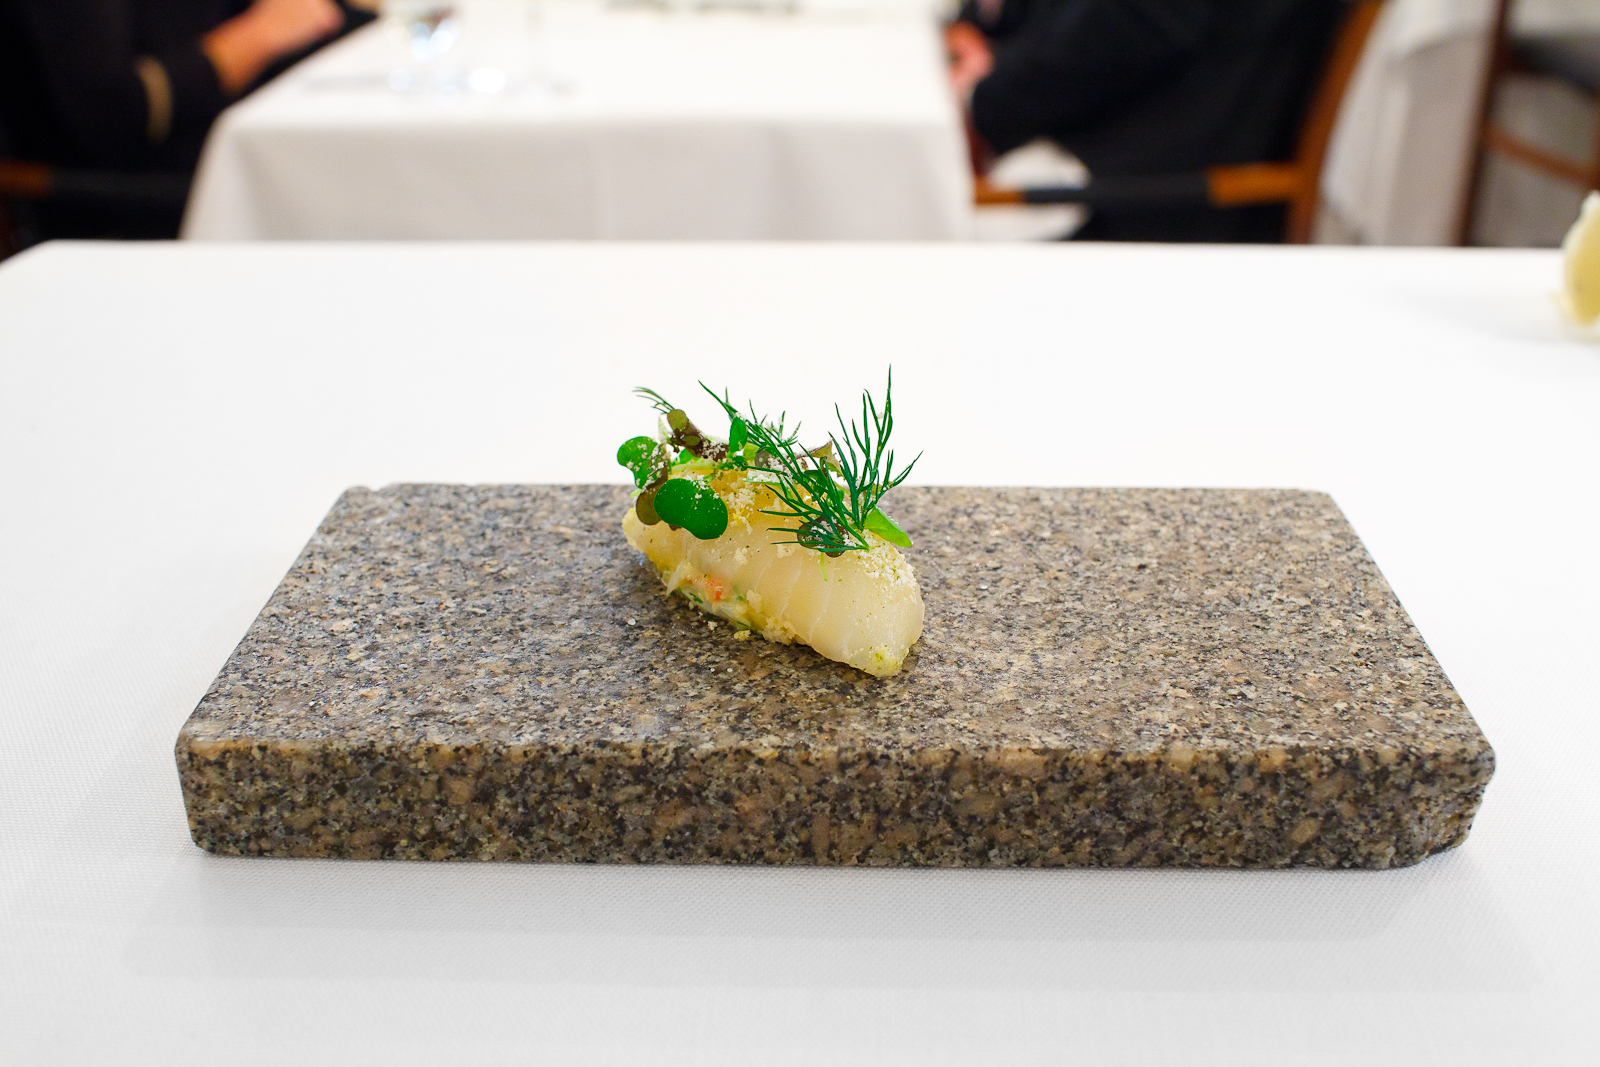 Amuse Bouche_ 12-day aged halibut with duck eggs from Blaxsta and fresh king crab from Norway, with autumn herbs flavored with green tea and lemon.jpg